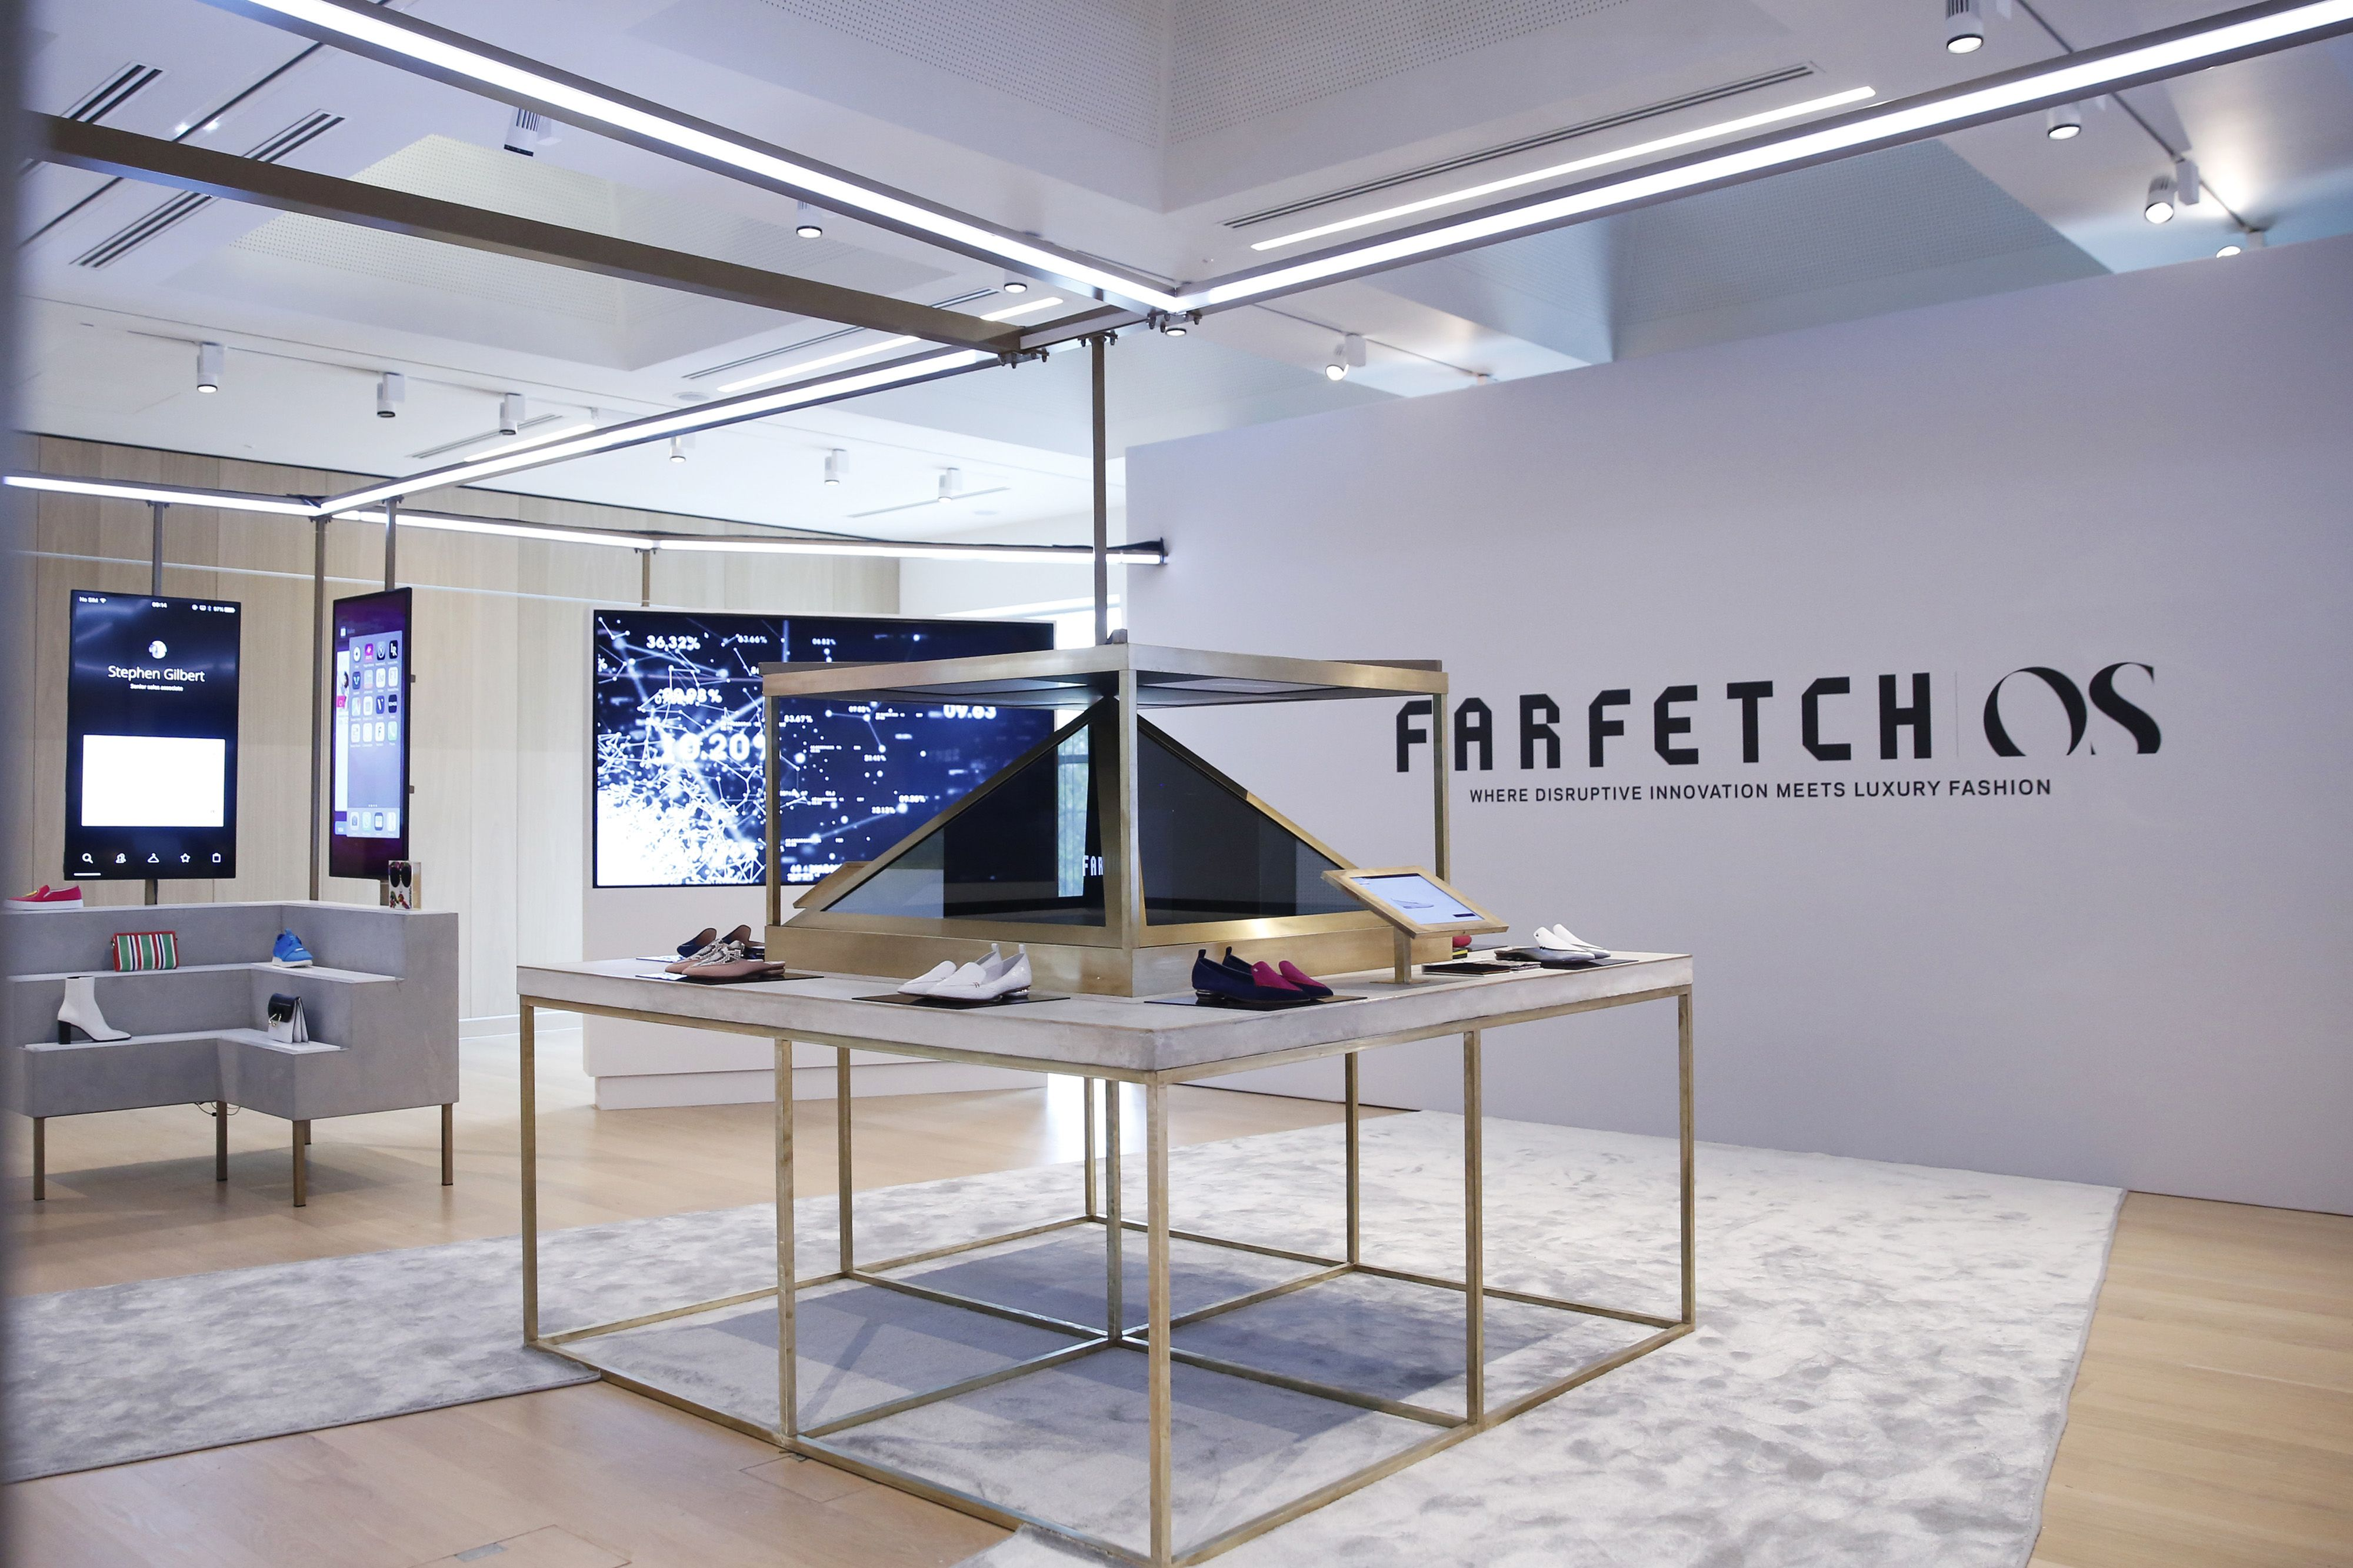 Why Farfetch's stock cratered despite acquisition of a megabrand